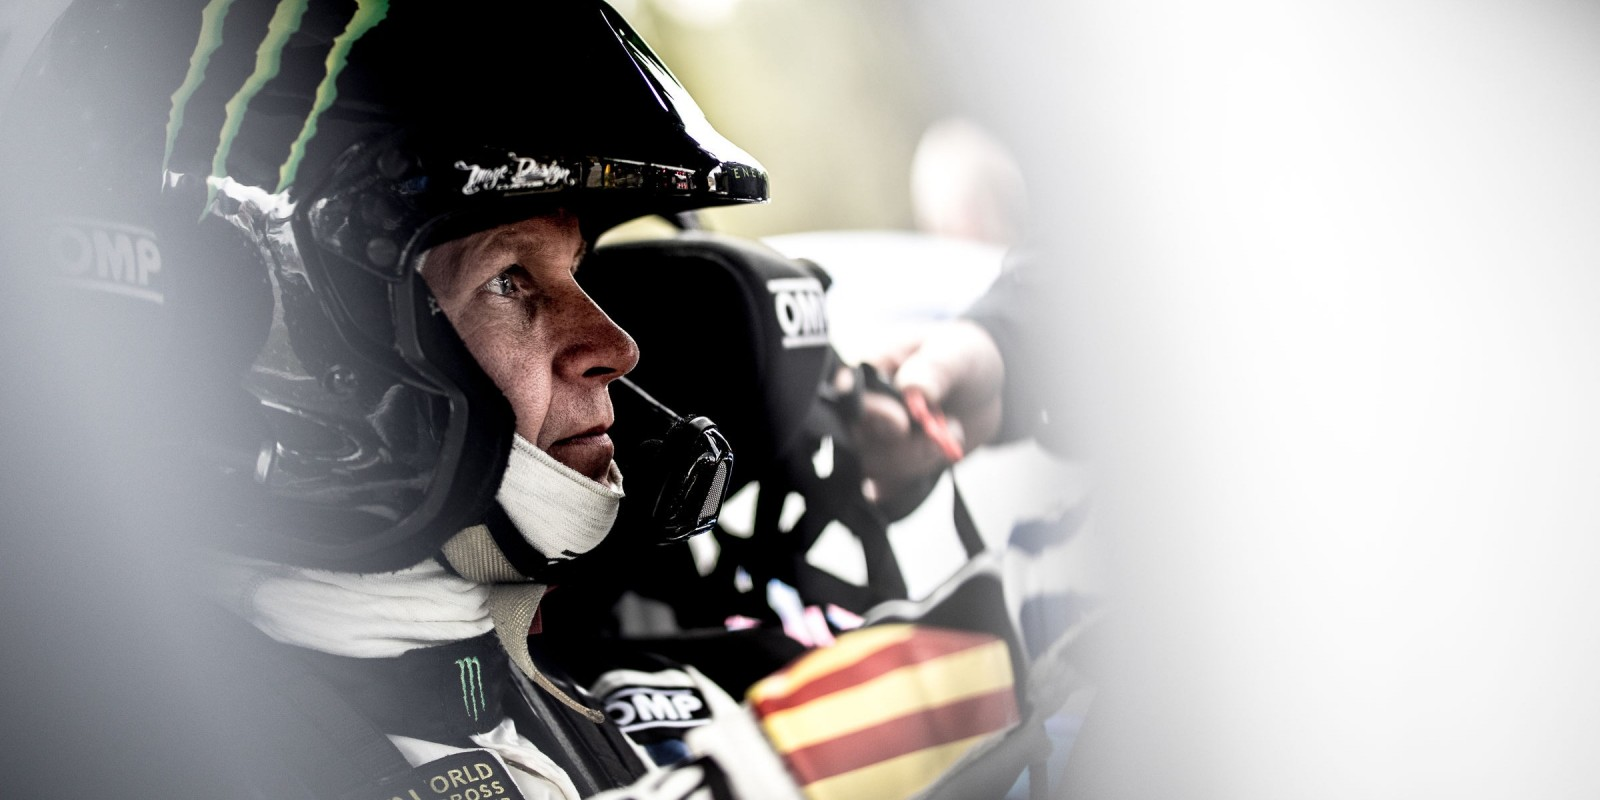 Petter Solberg at 2017 World RX | Barcelona, Spain